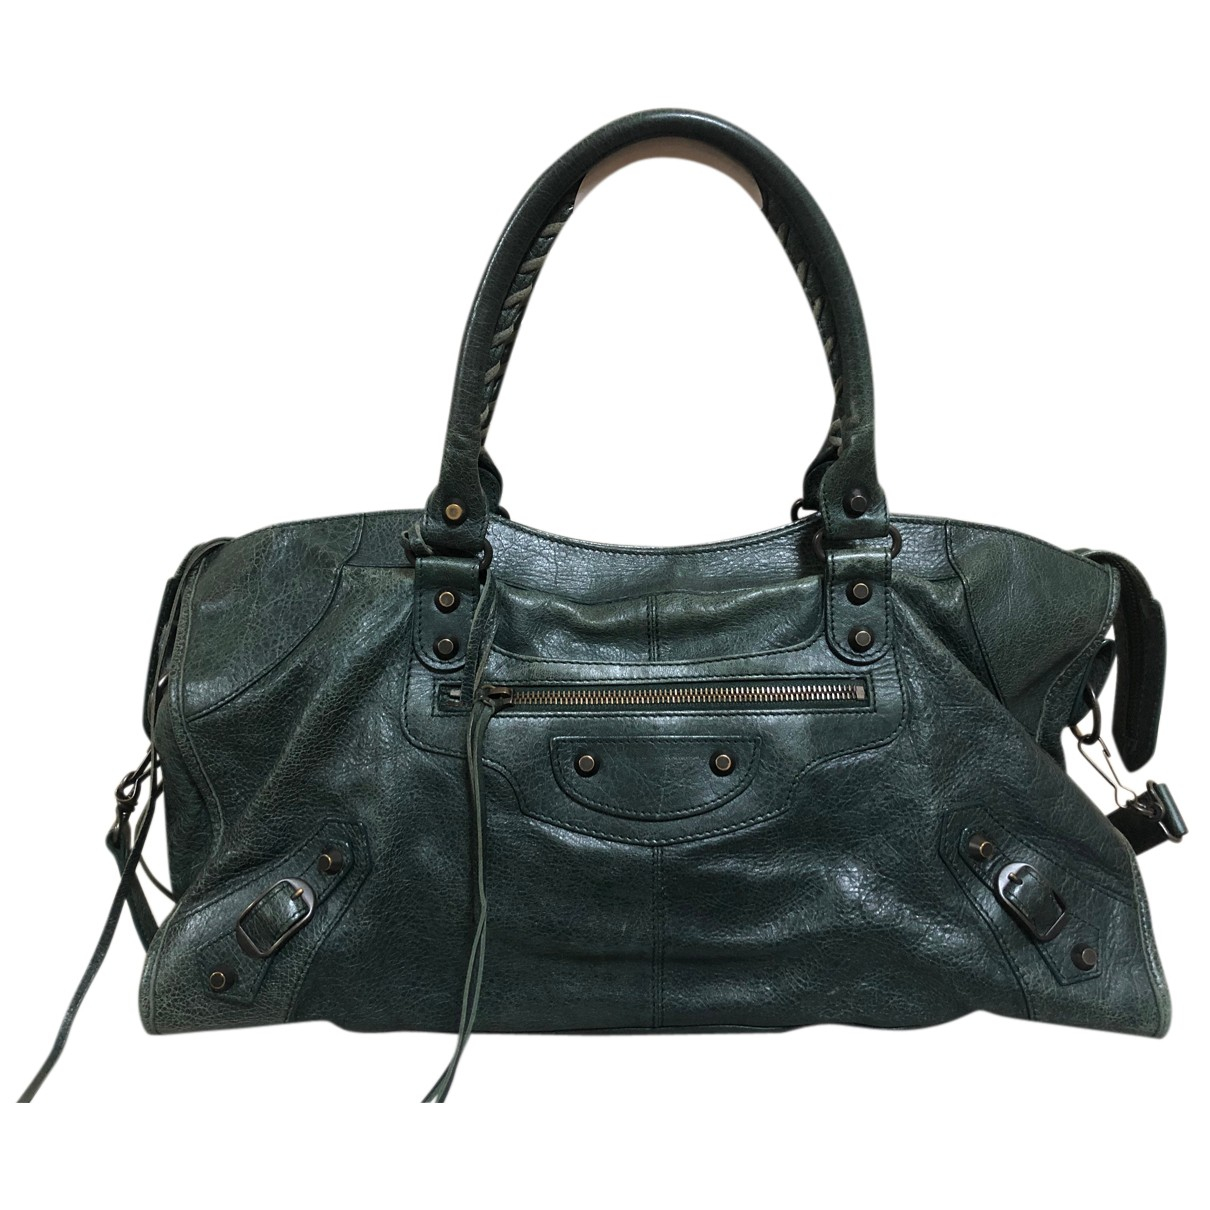 Balenciaga Part Time Green Leather handbag for Women N